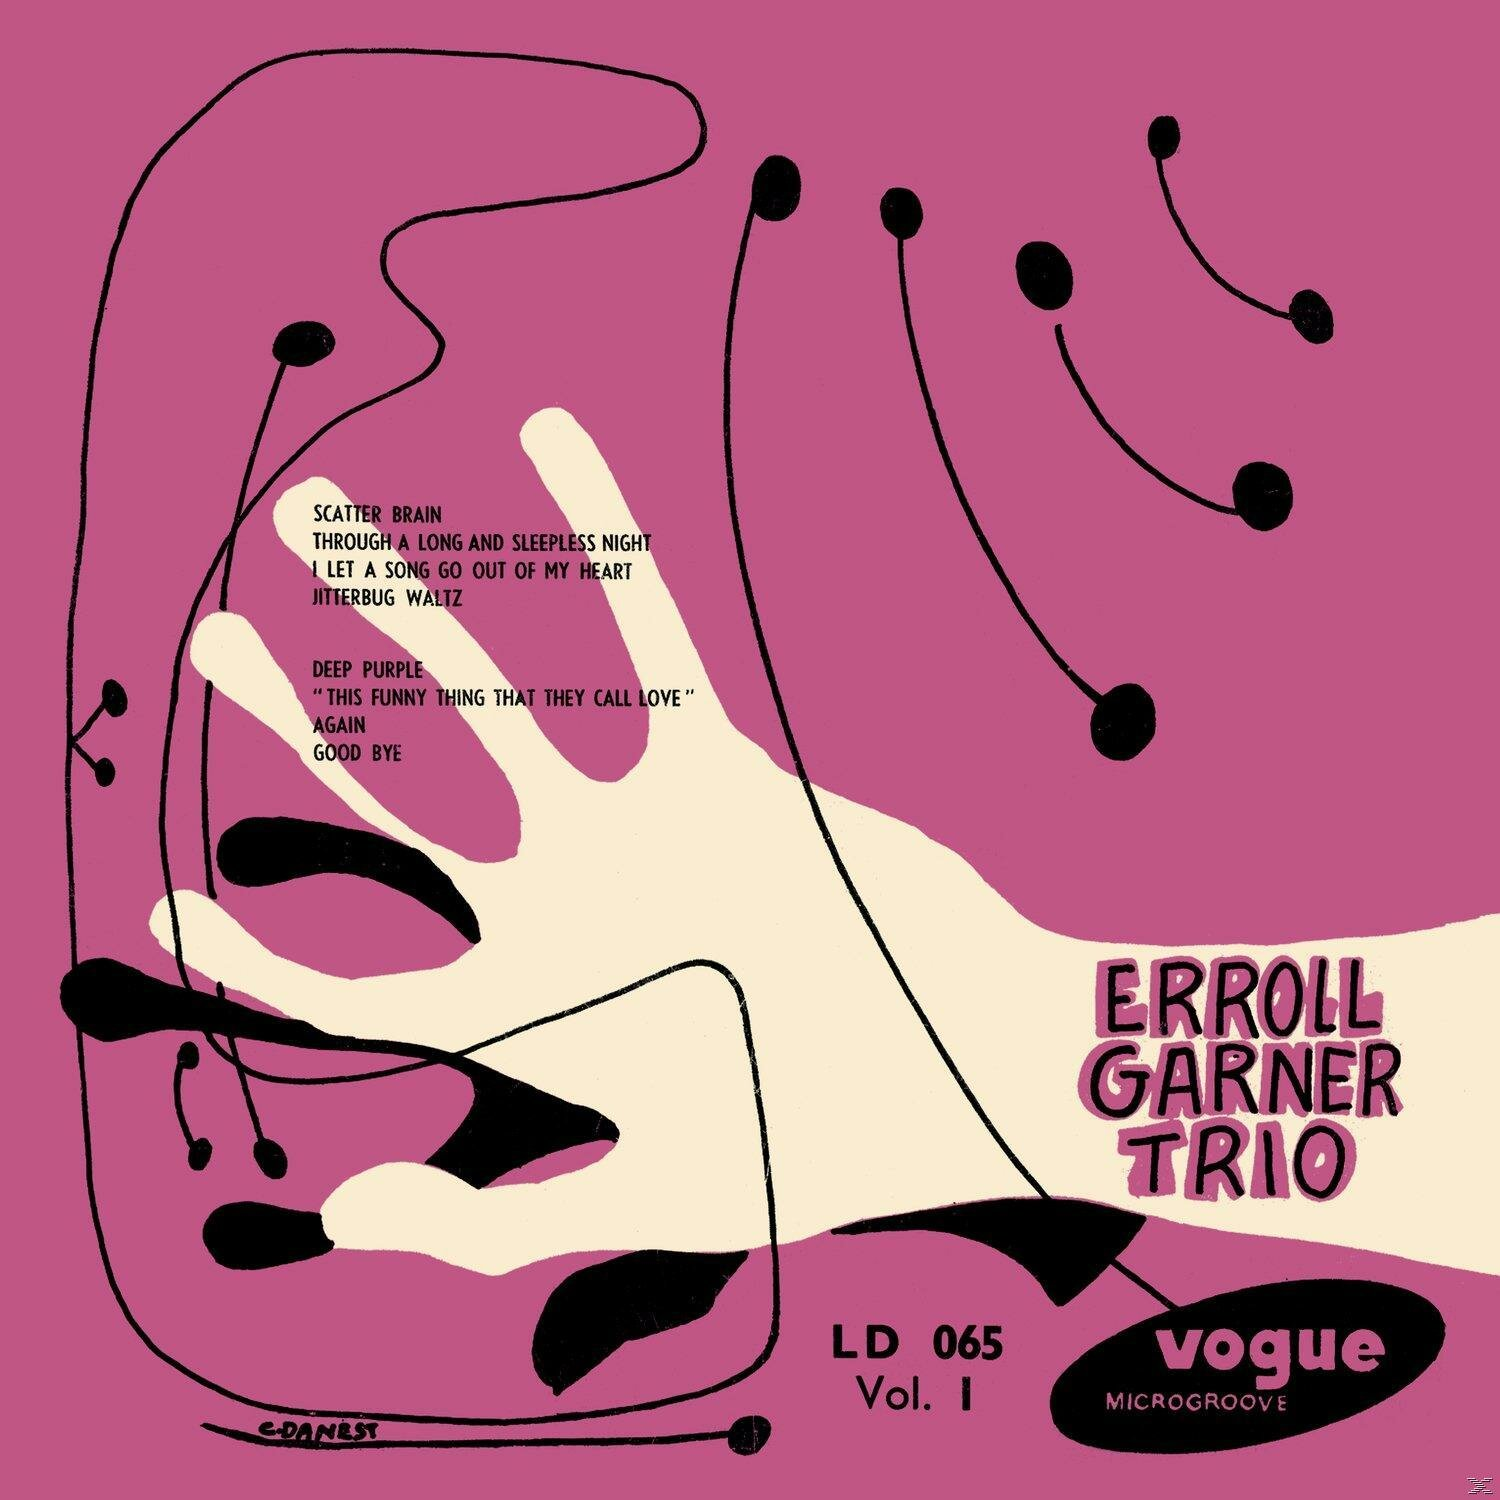 Erroll Garner Trio Vol.1